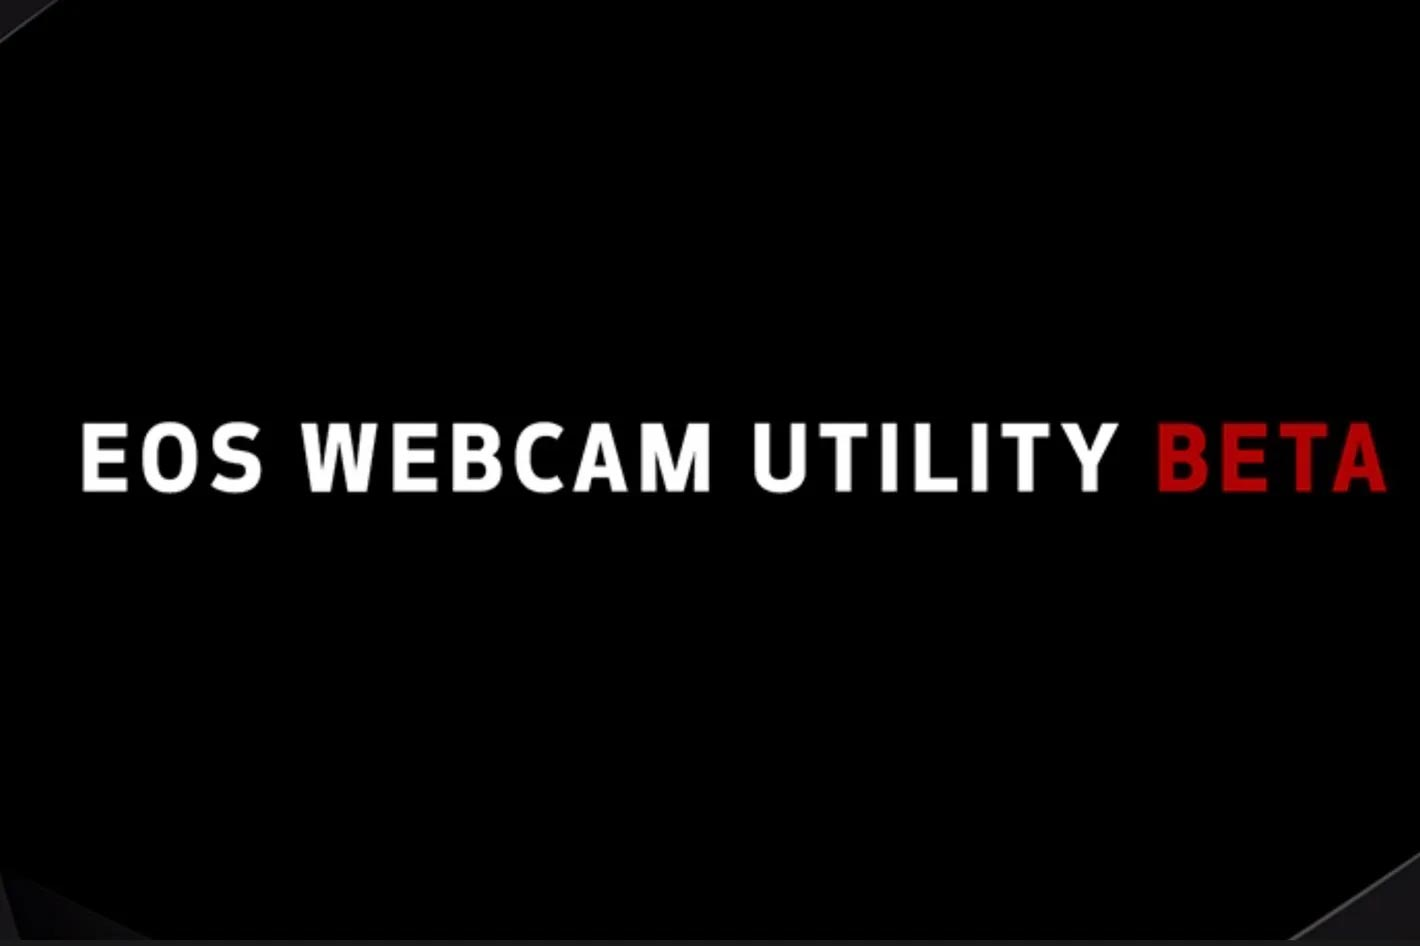 EOS Webcam Utility for Windows now works with 49 cameras